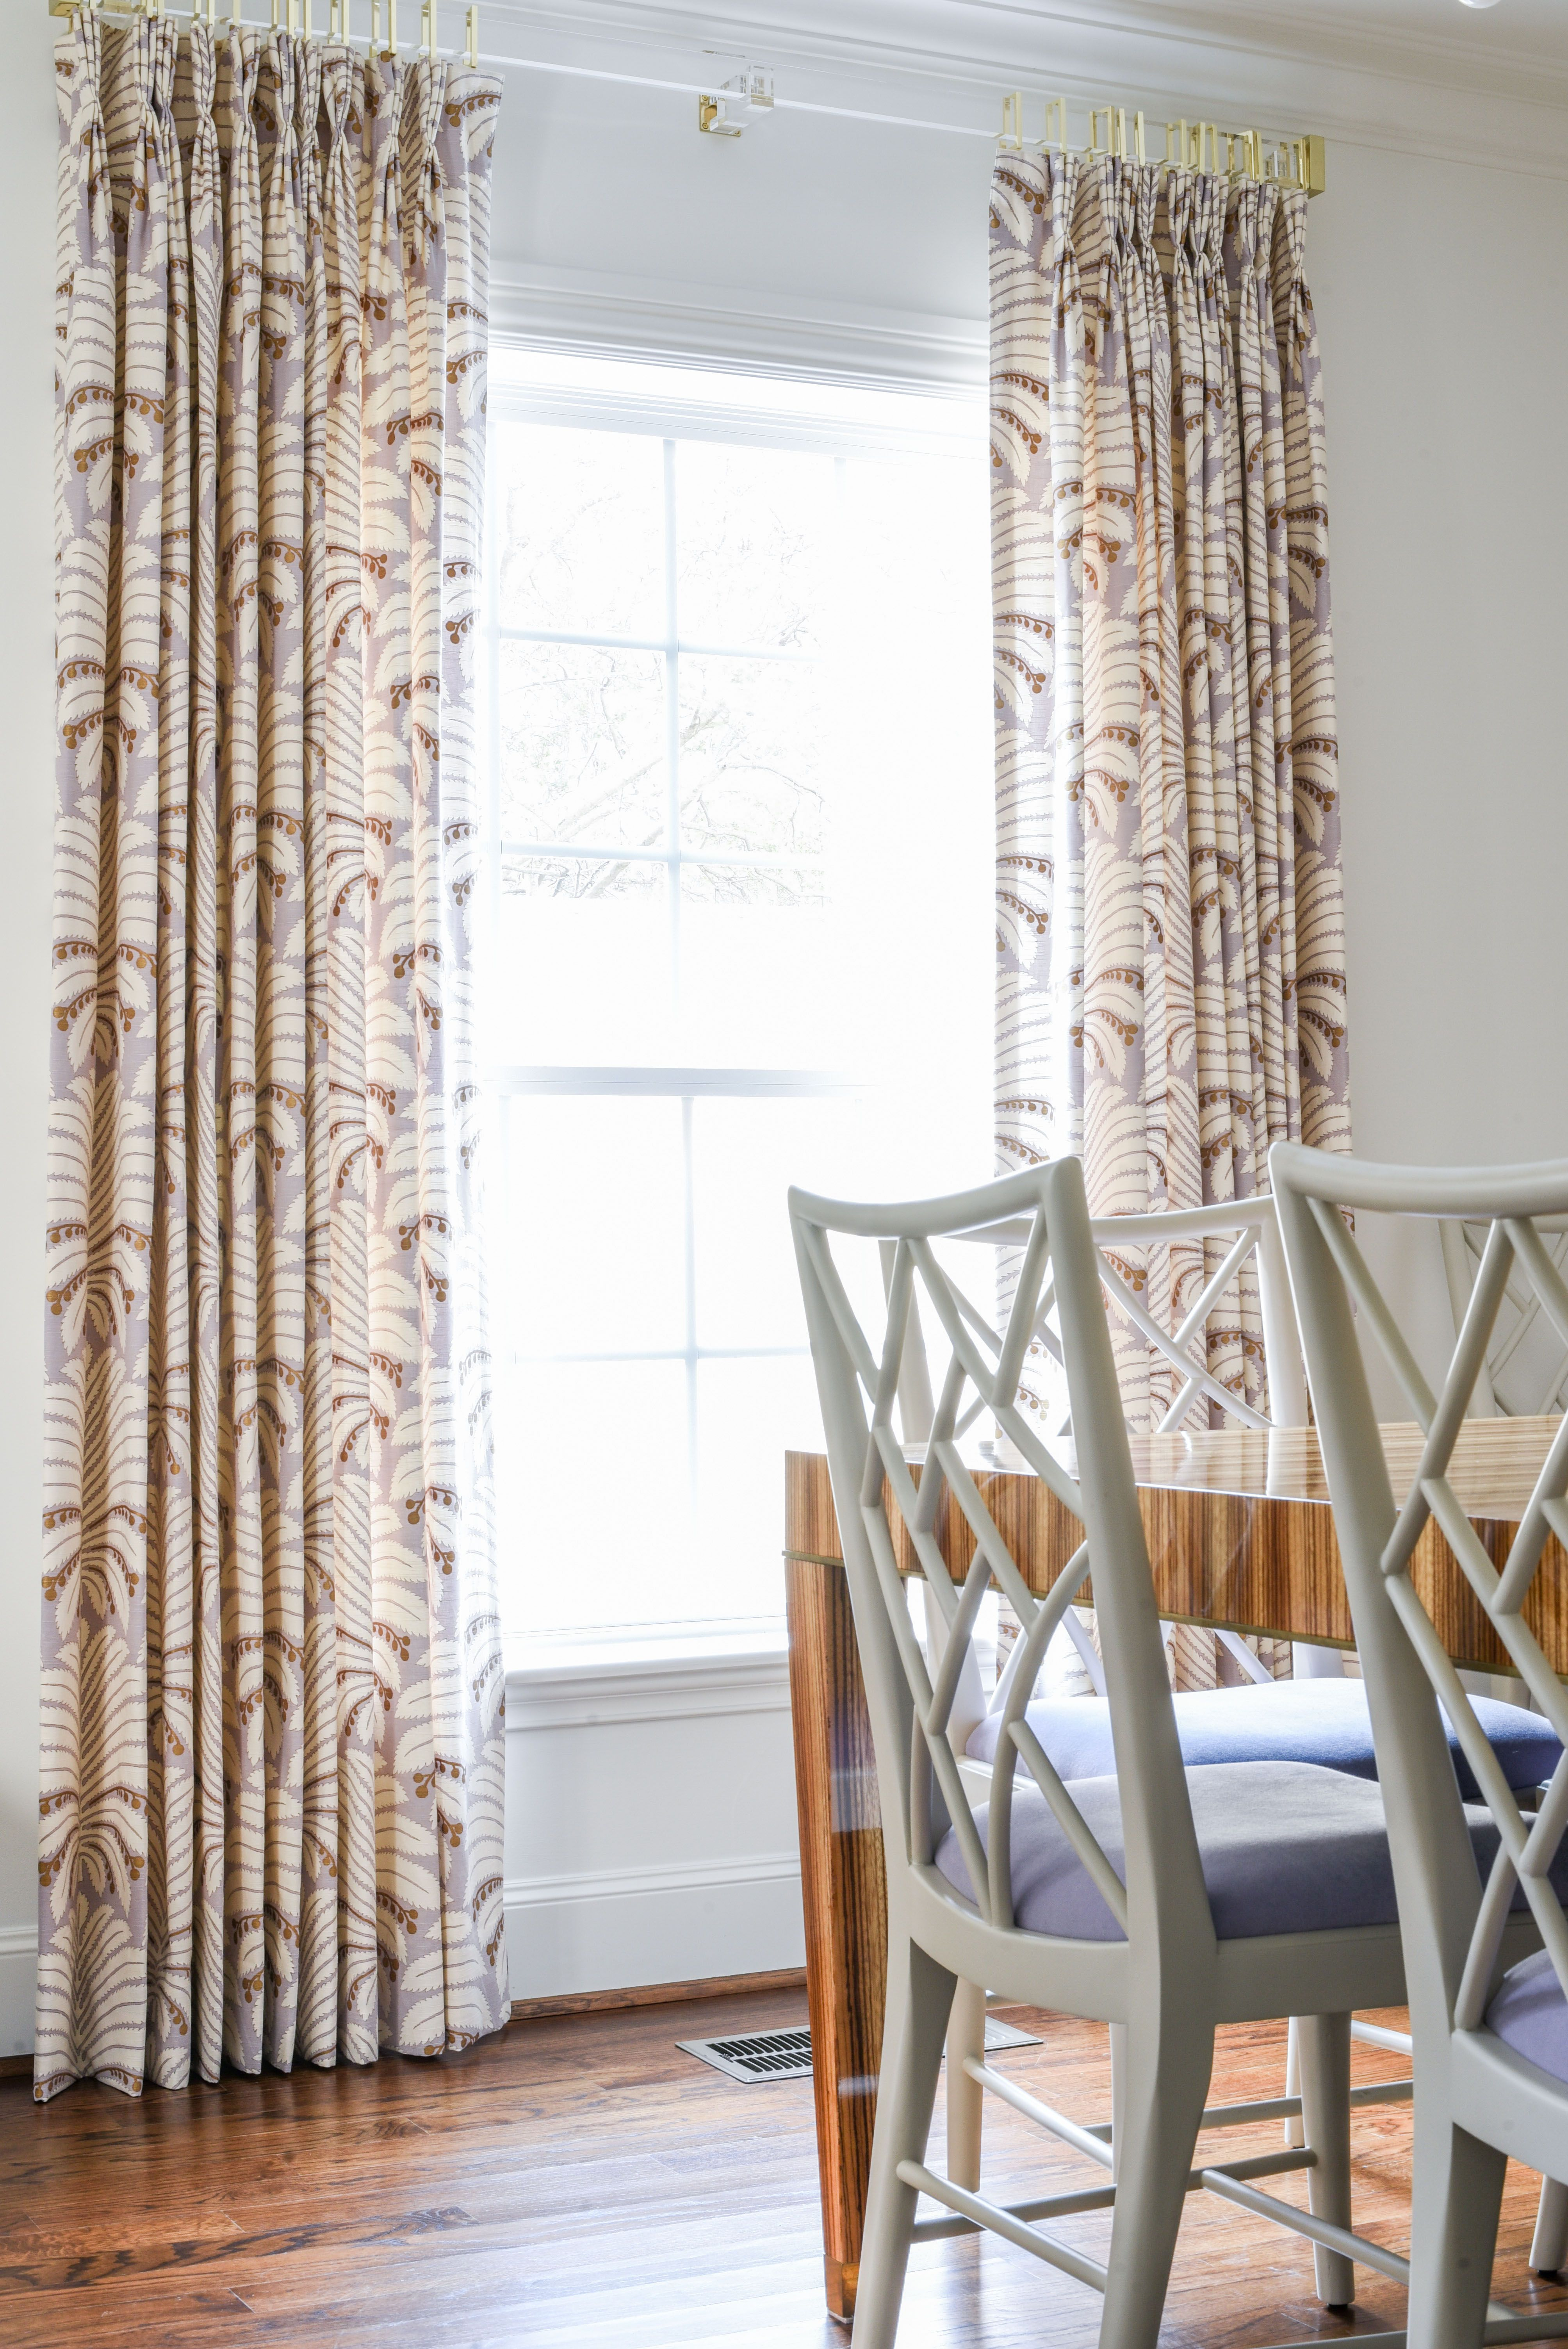 Dining Room Design With Custom Drapes Zebra Wood Dining Table